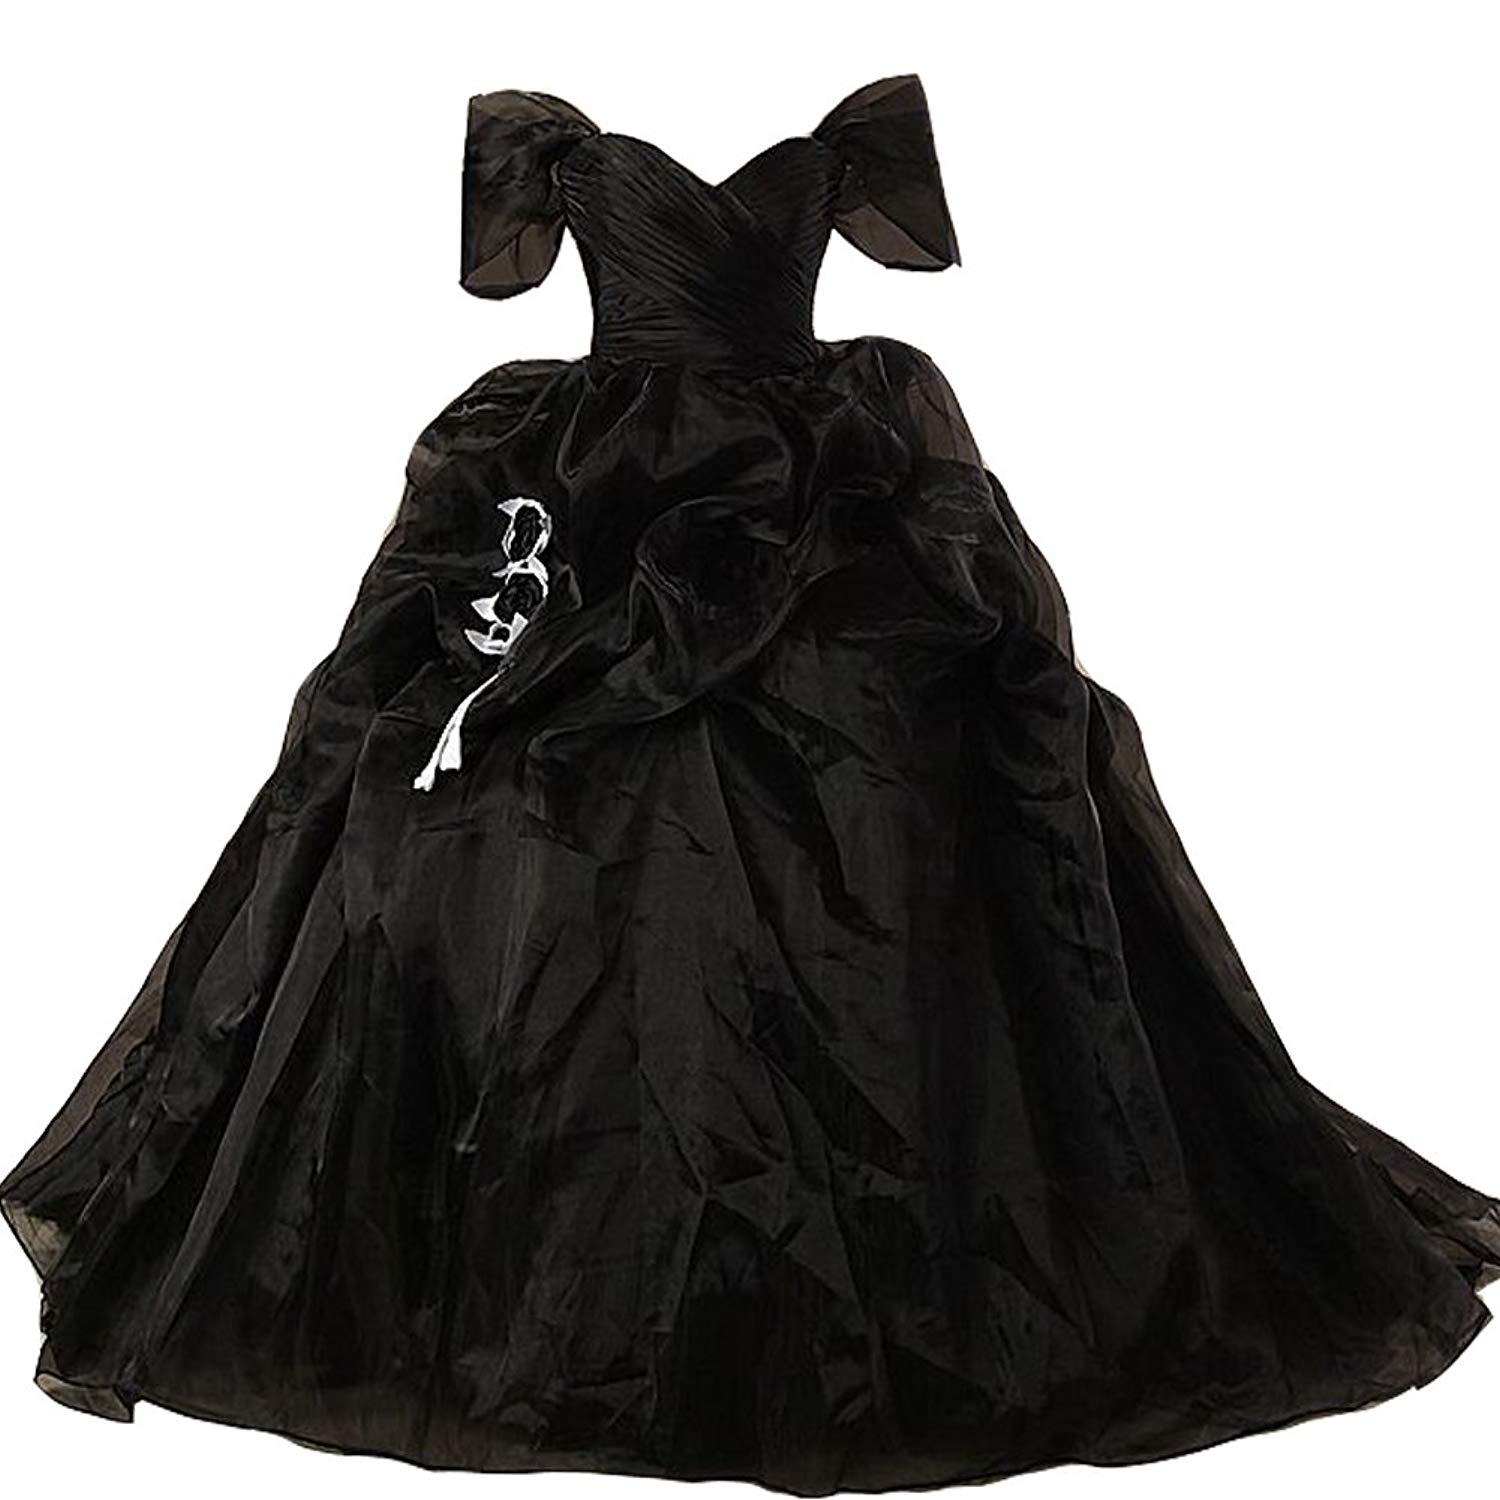 72dec41c5a8 Get Quotations · Lemai Vintage Black and White Ball Gown Off Shoulder Gothic  Victorian Wedding Dresses